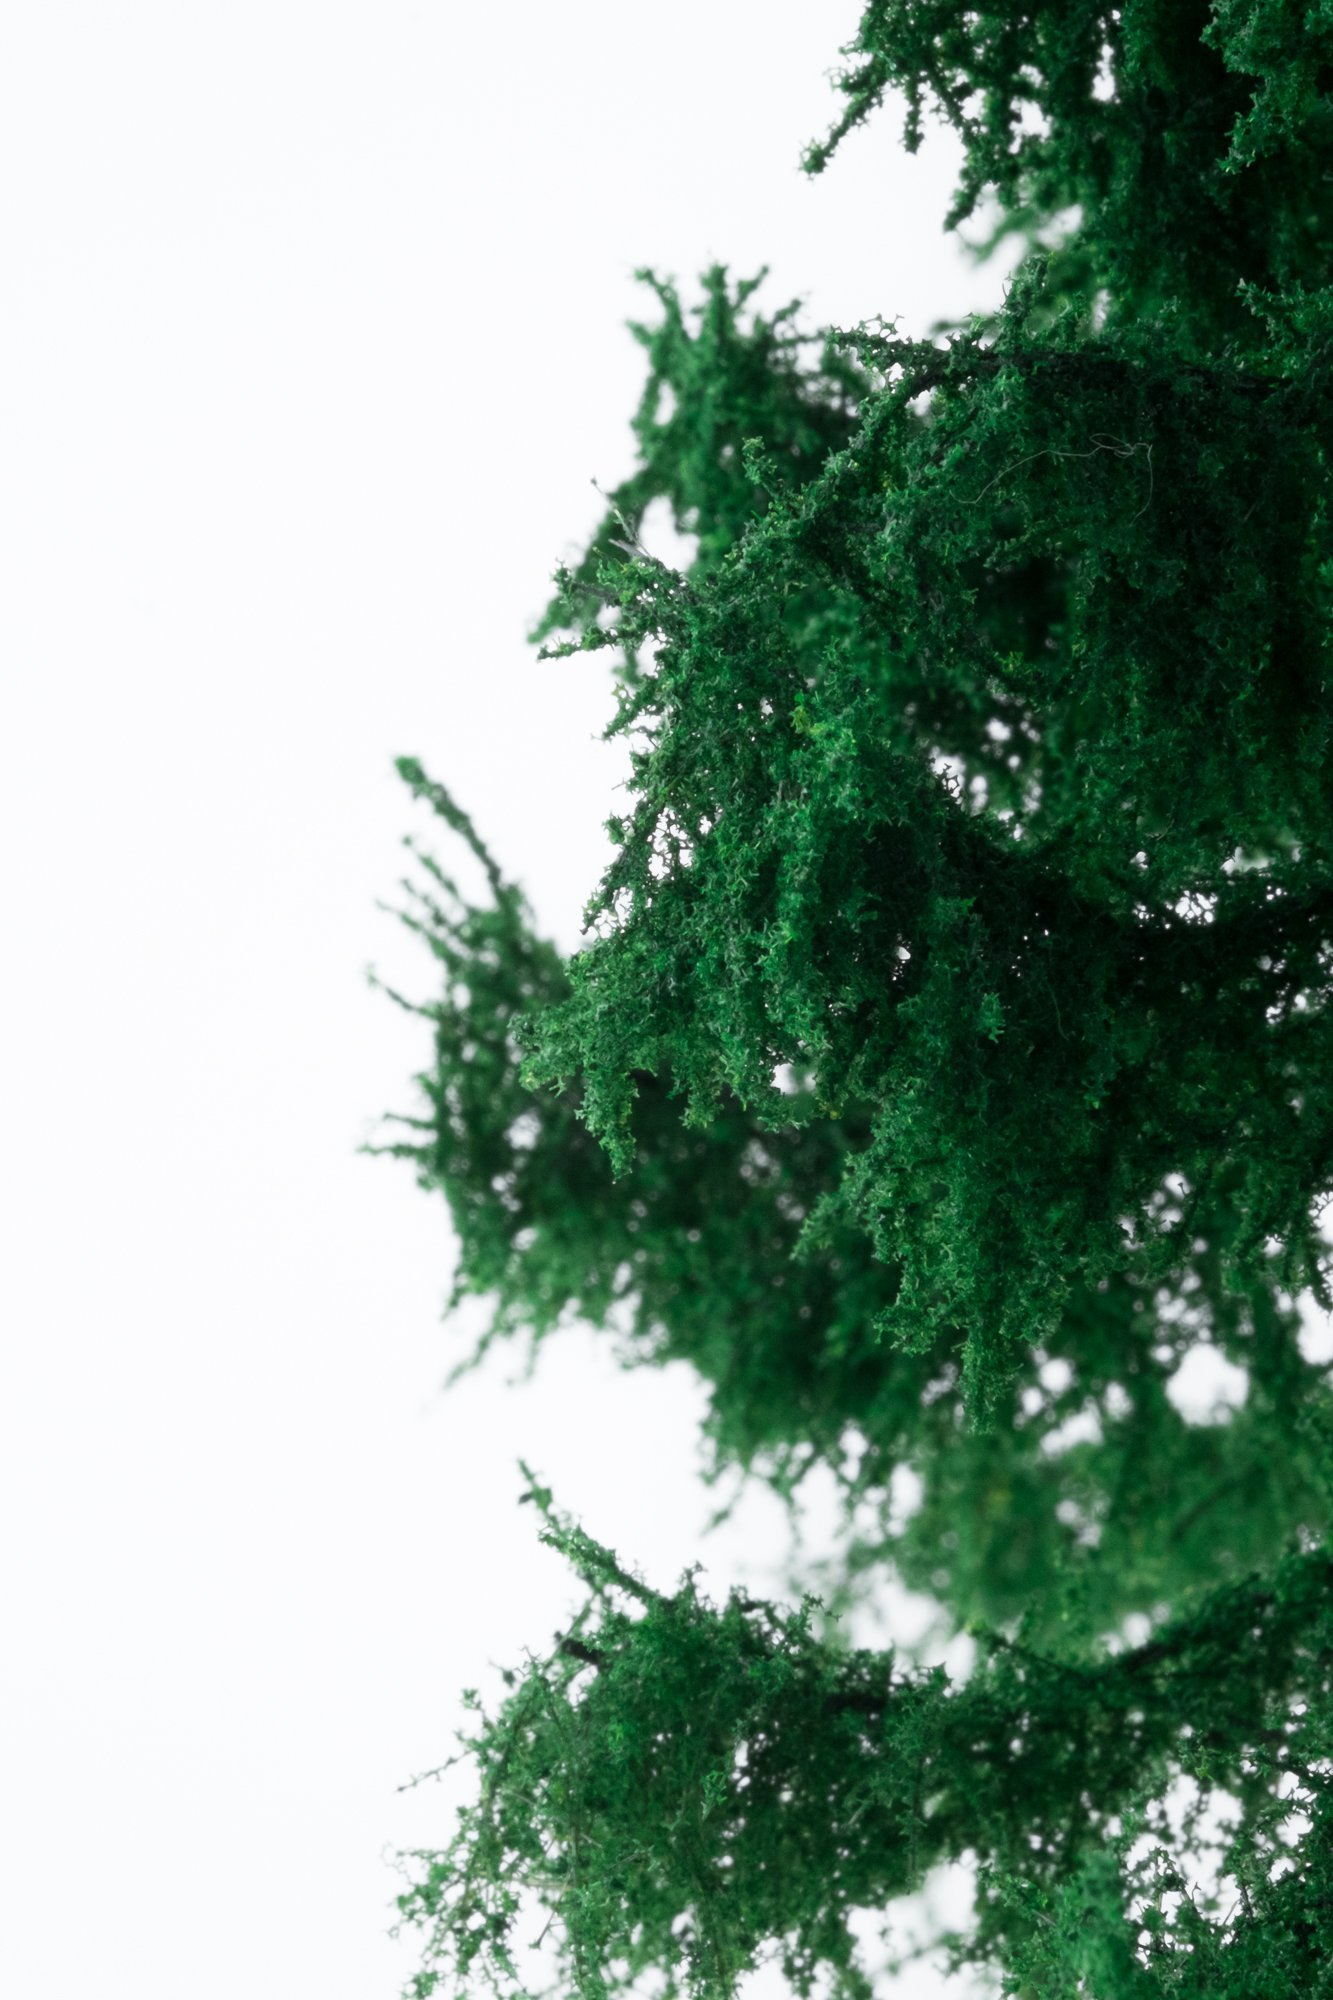 Closeup of foliage on forest spruce tree model. Made from high quality model supplies by Primo Models.